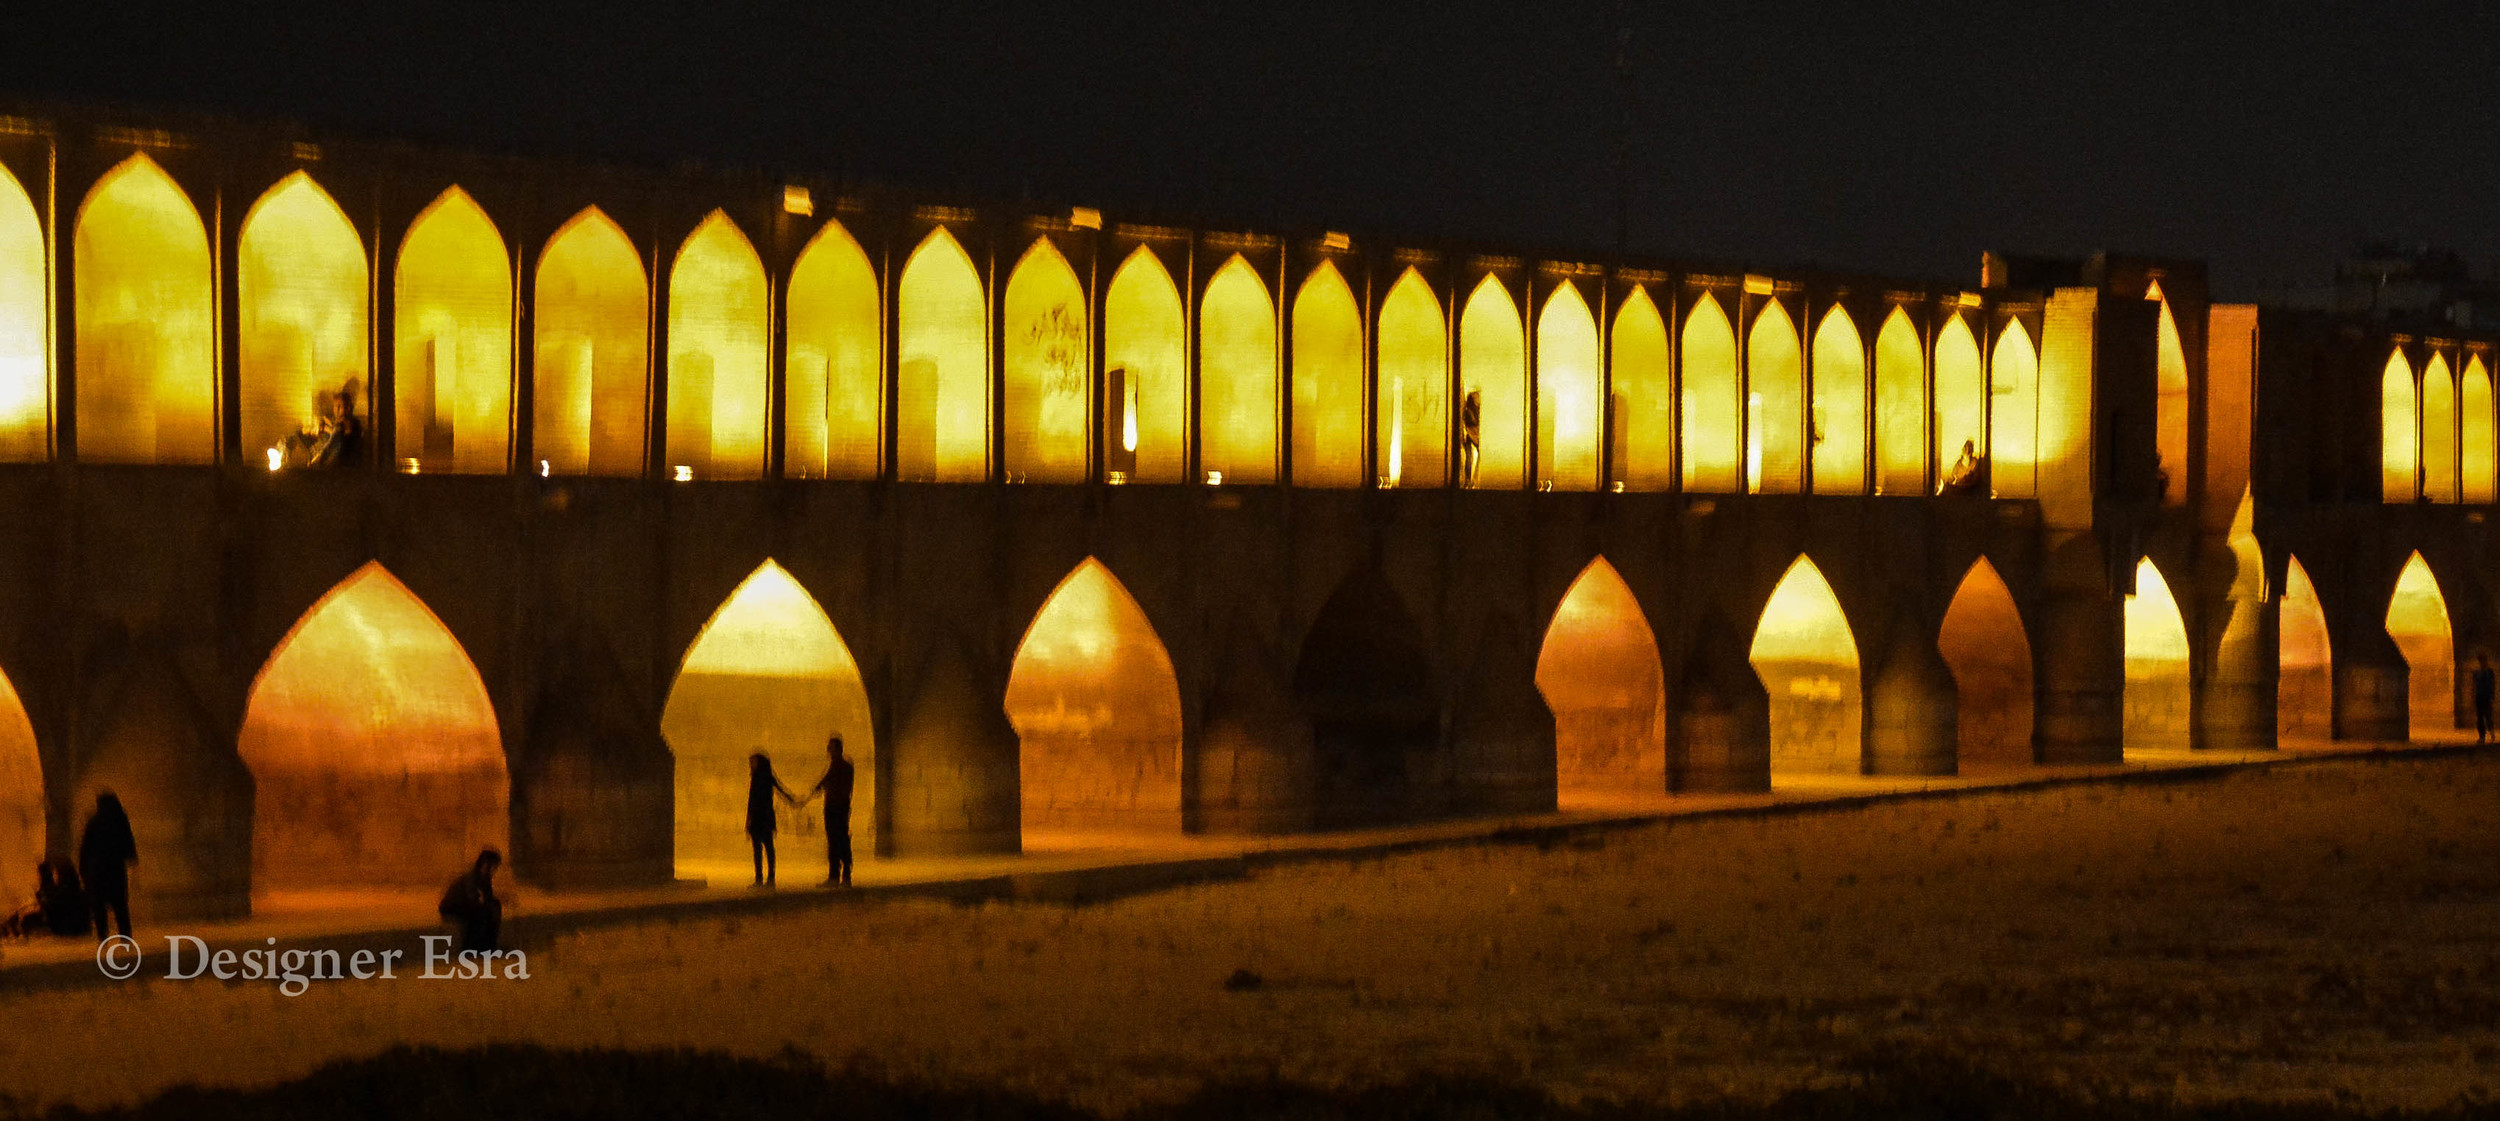 The Romantic Lovers Bridge in Isfahan